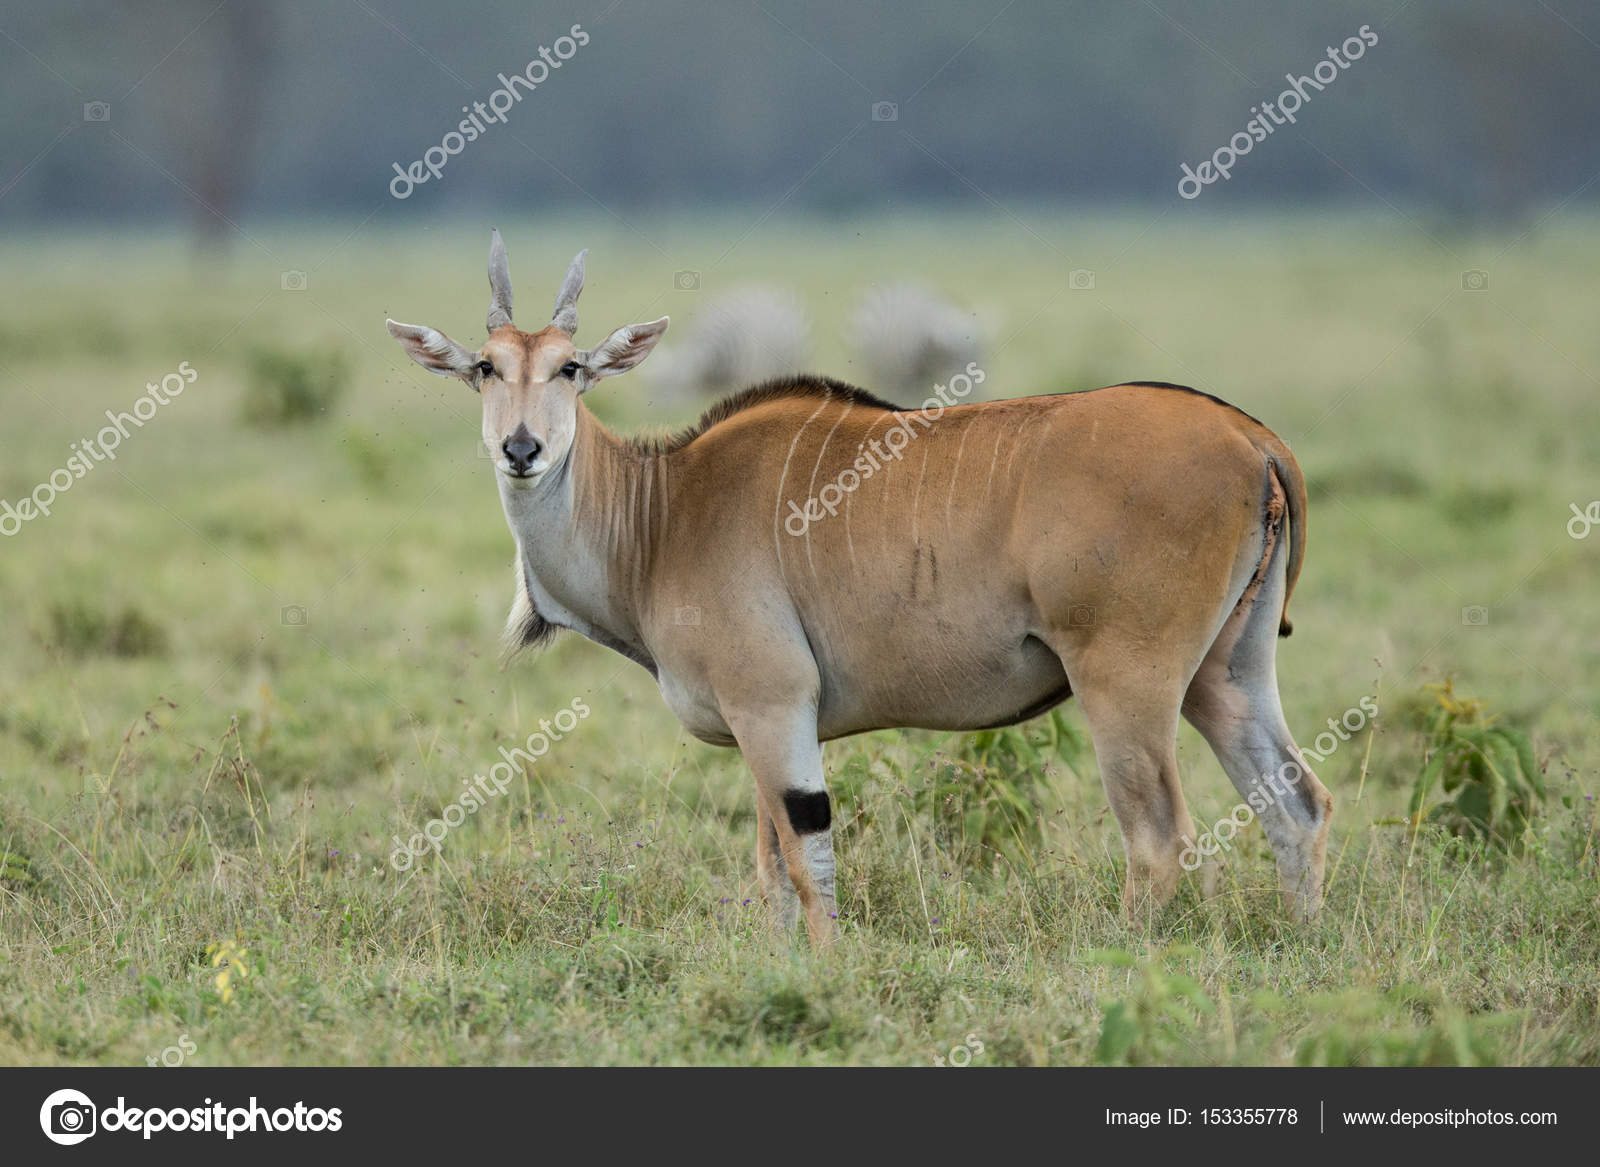 antelope chat Antelope/gazelle species that can be fed by the public in zoos what antelope/gazelle species are suitable choices for being fed compound feed by guests in zoos and then i mean suitable species, both in.